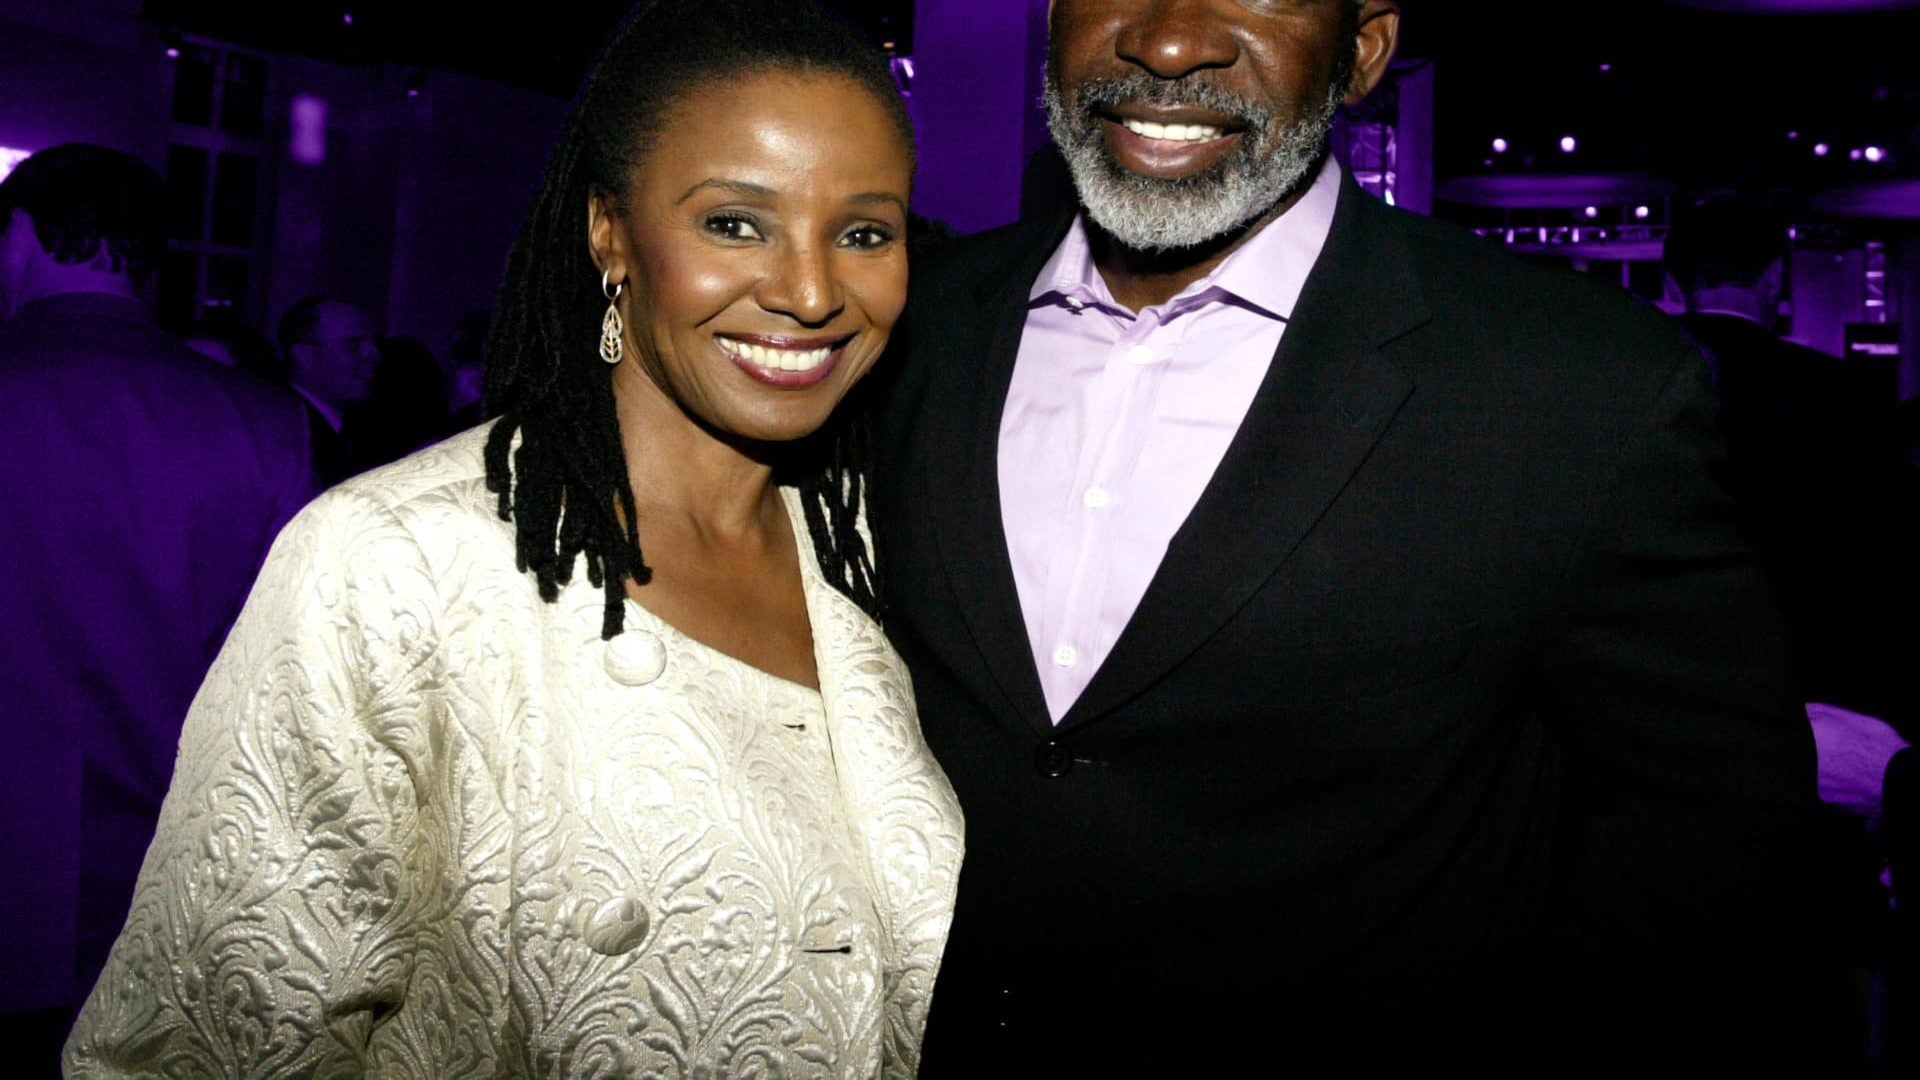 B. Smith's Husband, Dan Gasby, Says The Backlash He's Receiving Is Because His Girlfriend Is White